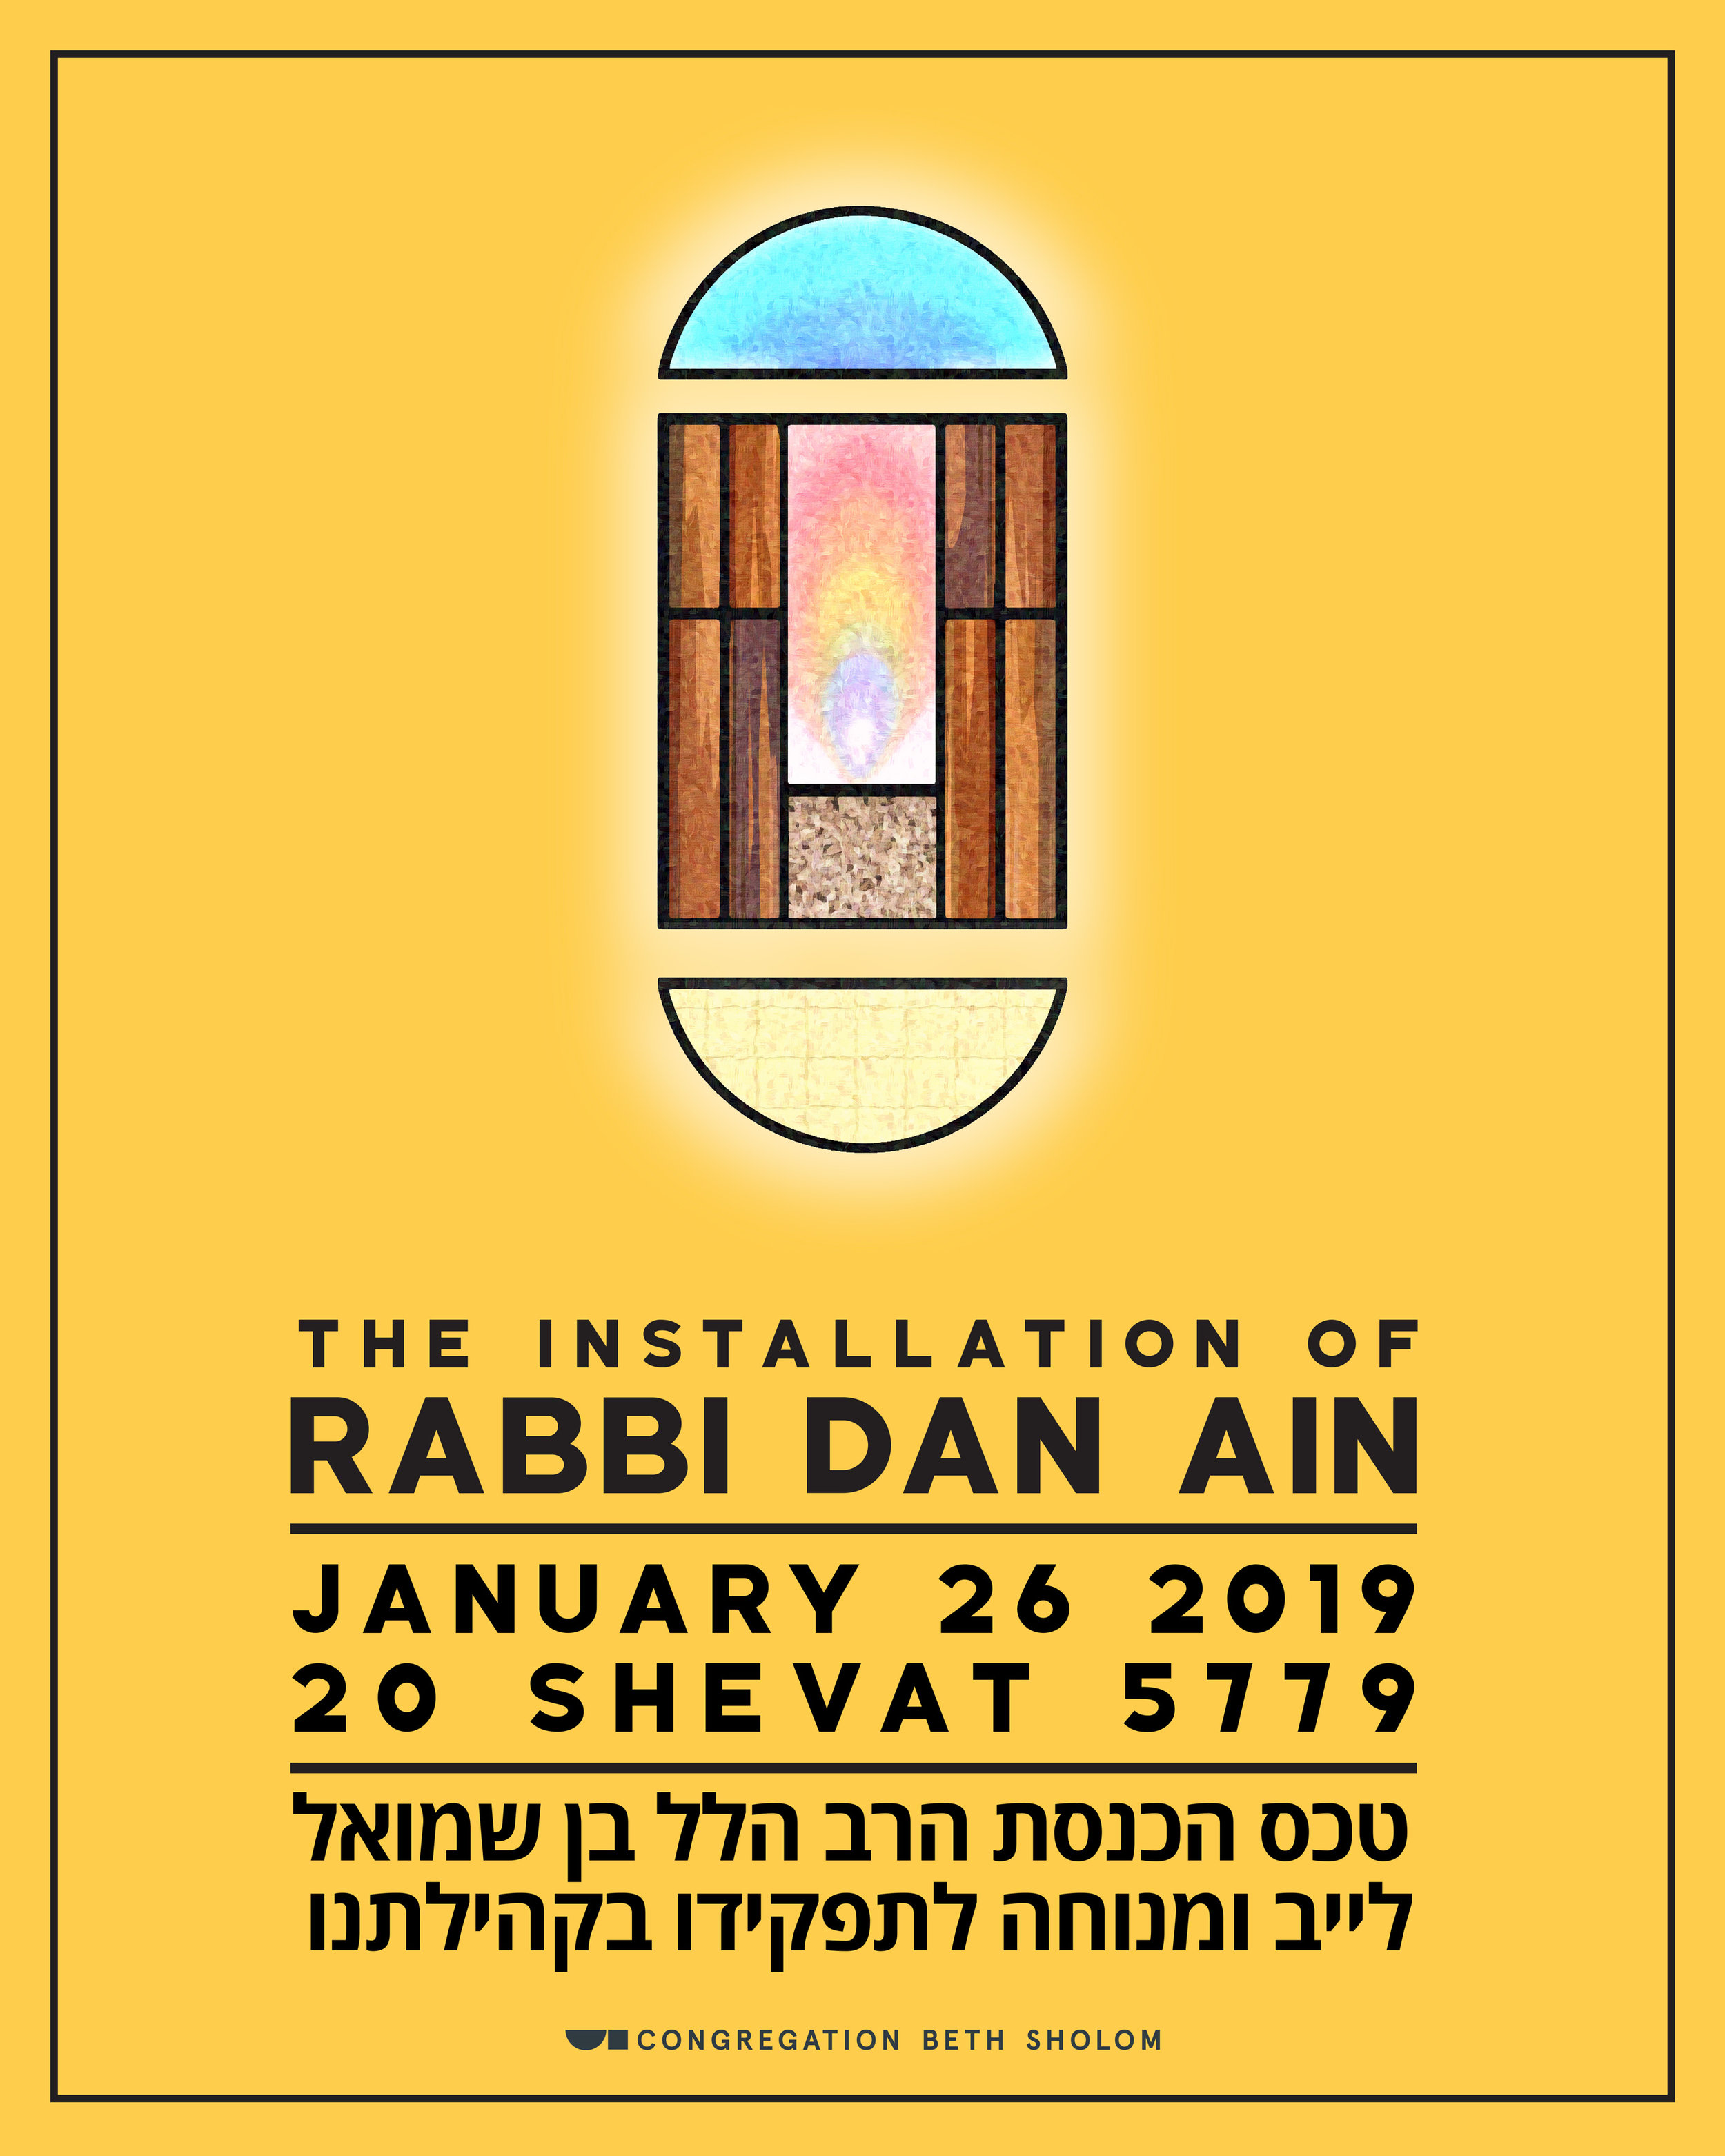 Rabbinic Installation Poster (Version 2)